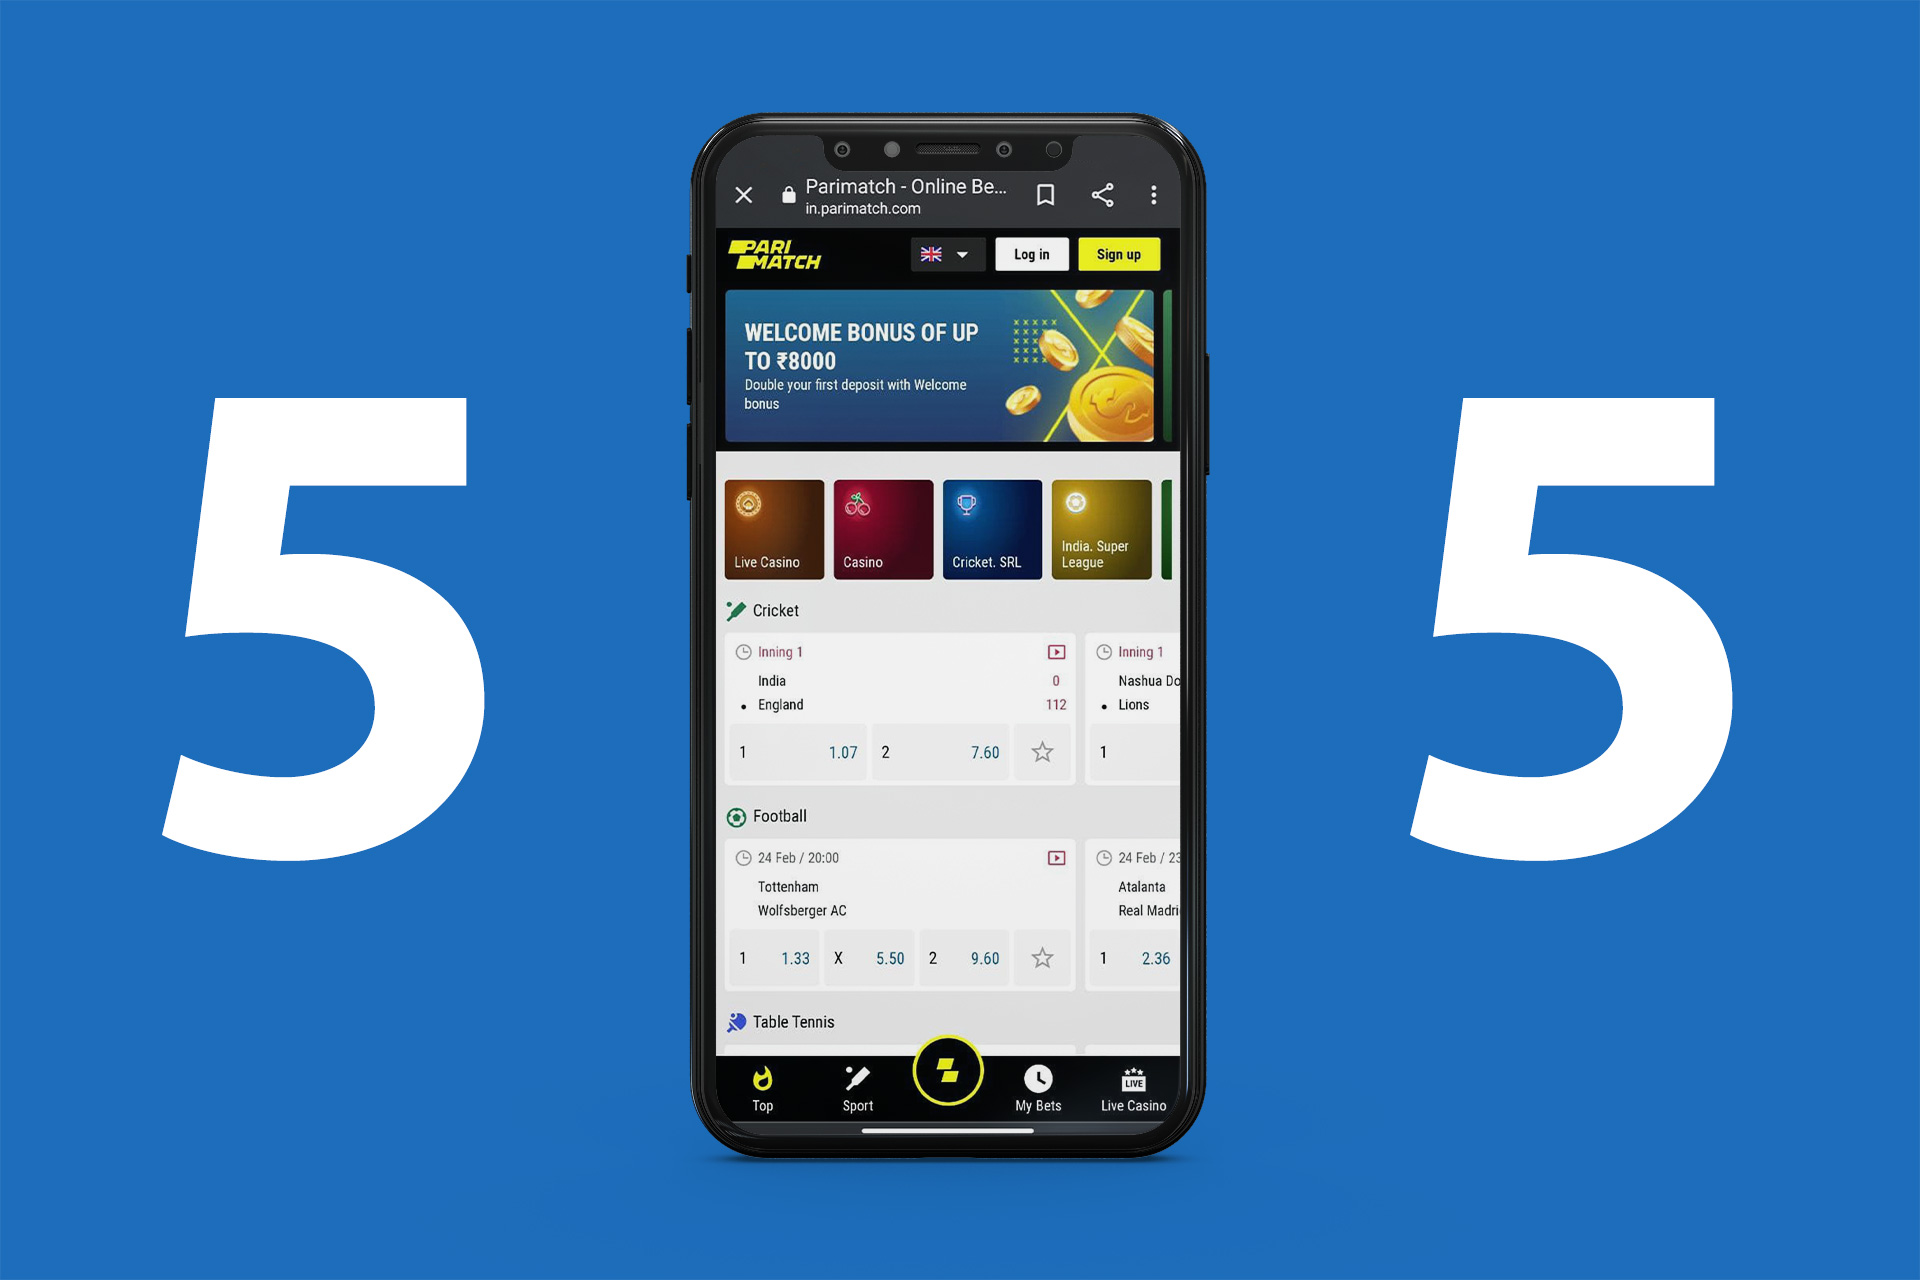 There are a lot of profitable odds on the IPL events at mobile apps.